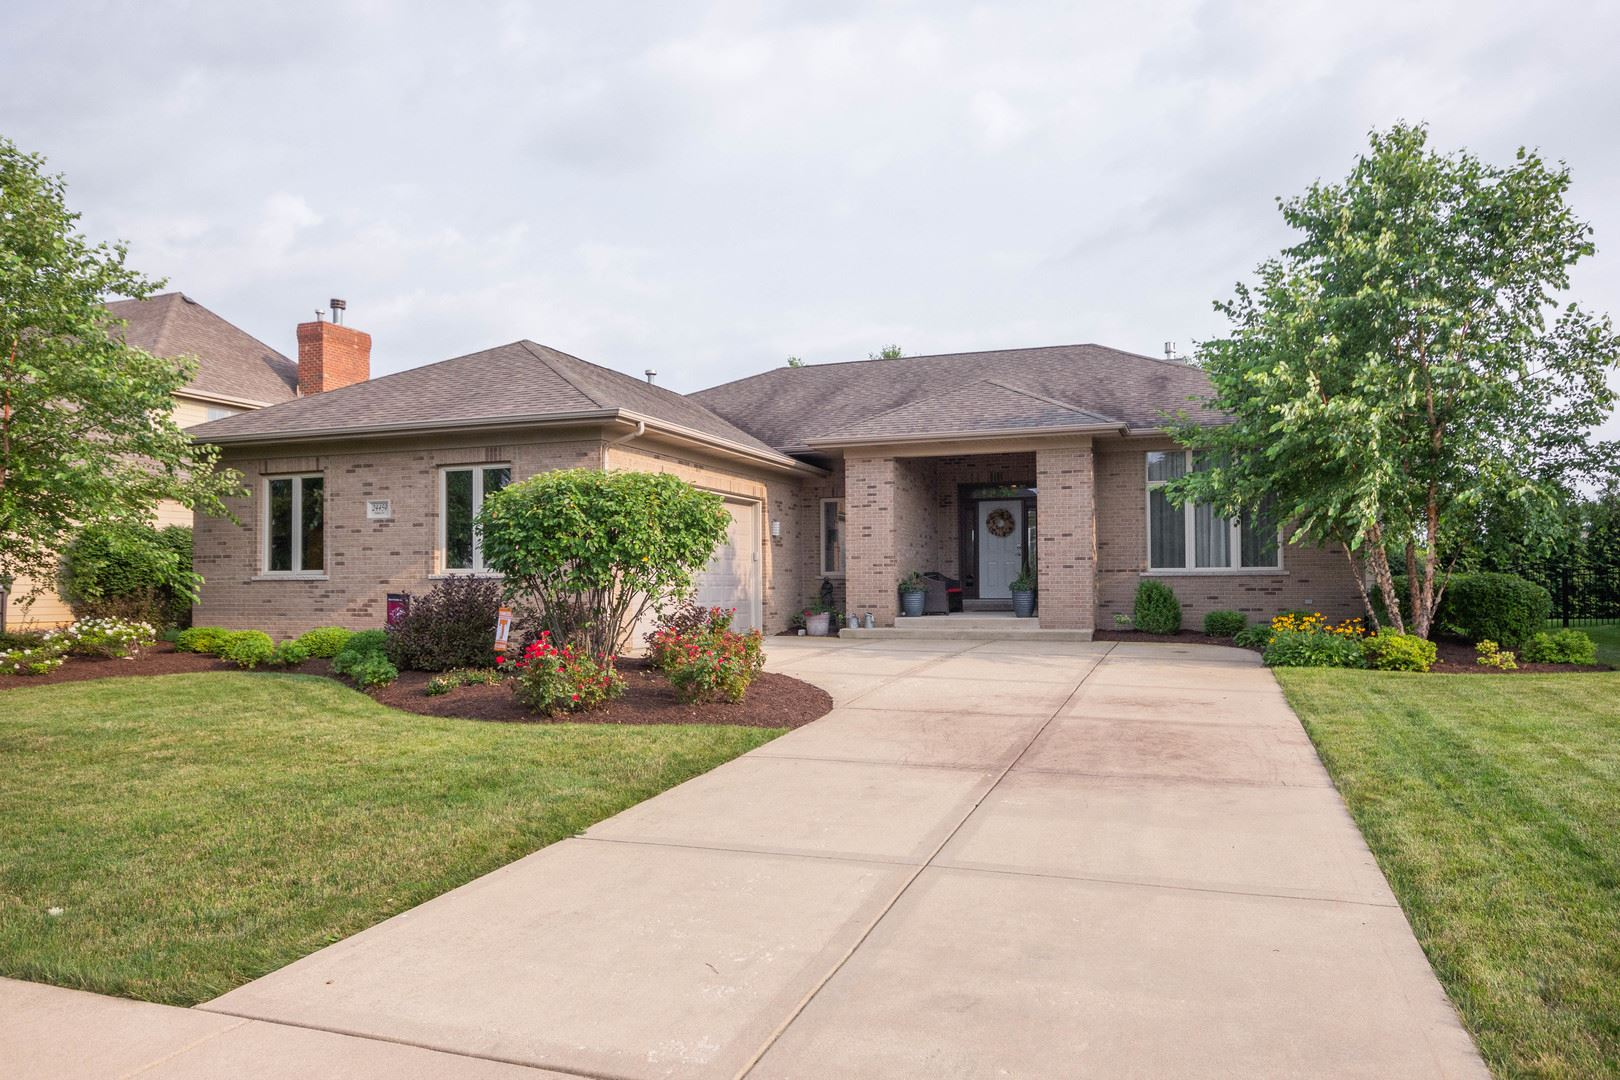 Photo of 24459 Bantry Drive, Shorewood, IL 60404 (MLS # 11155656)